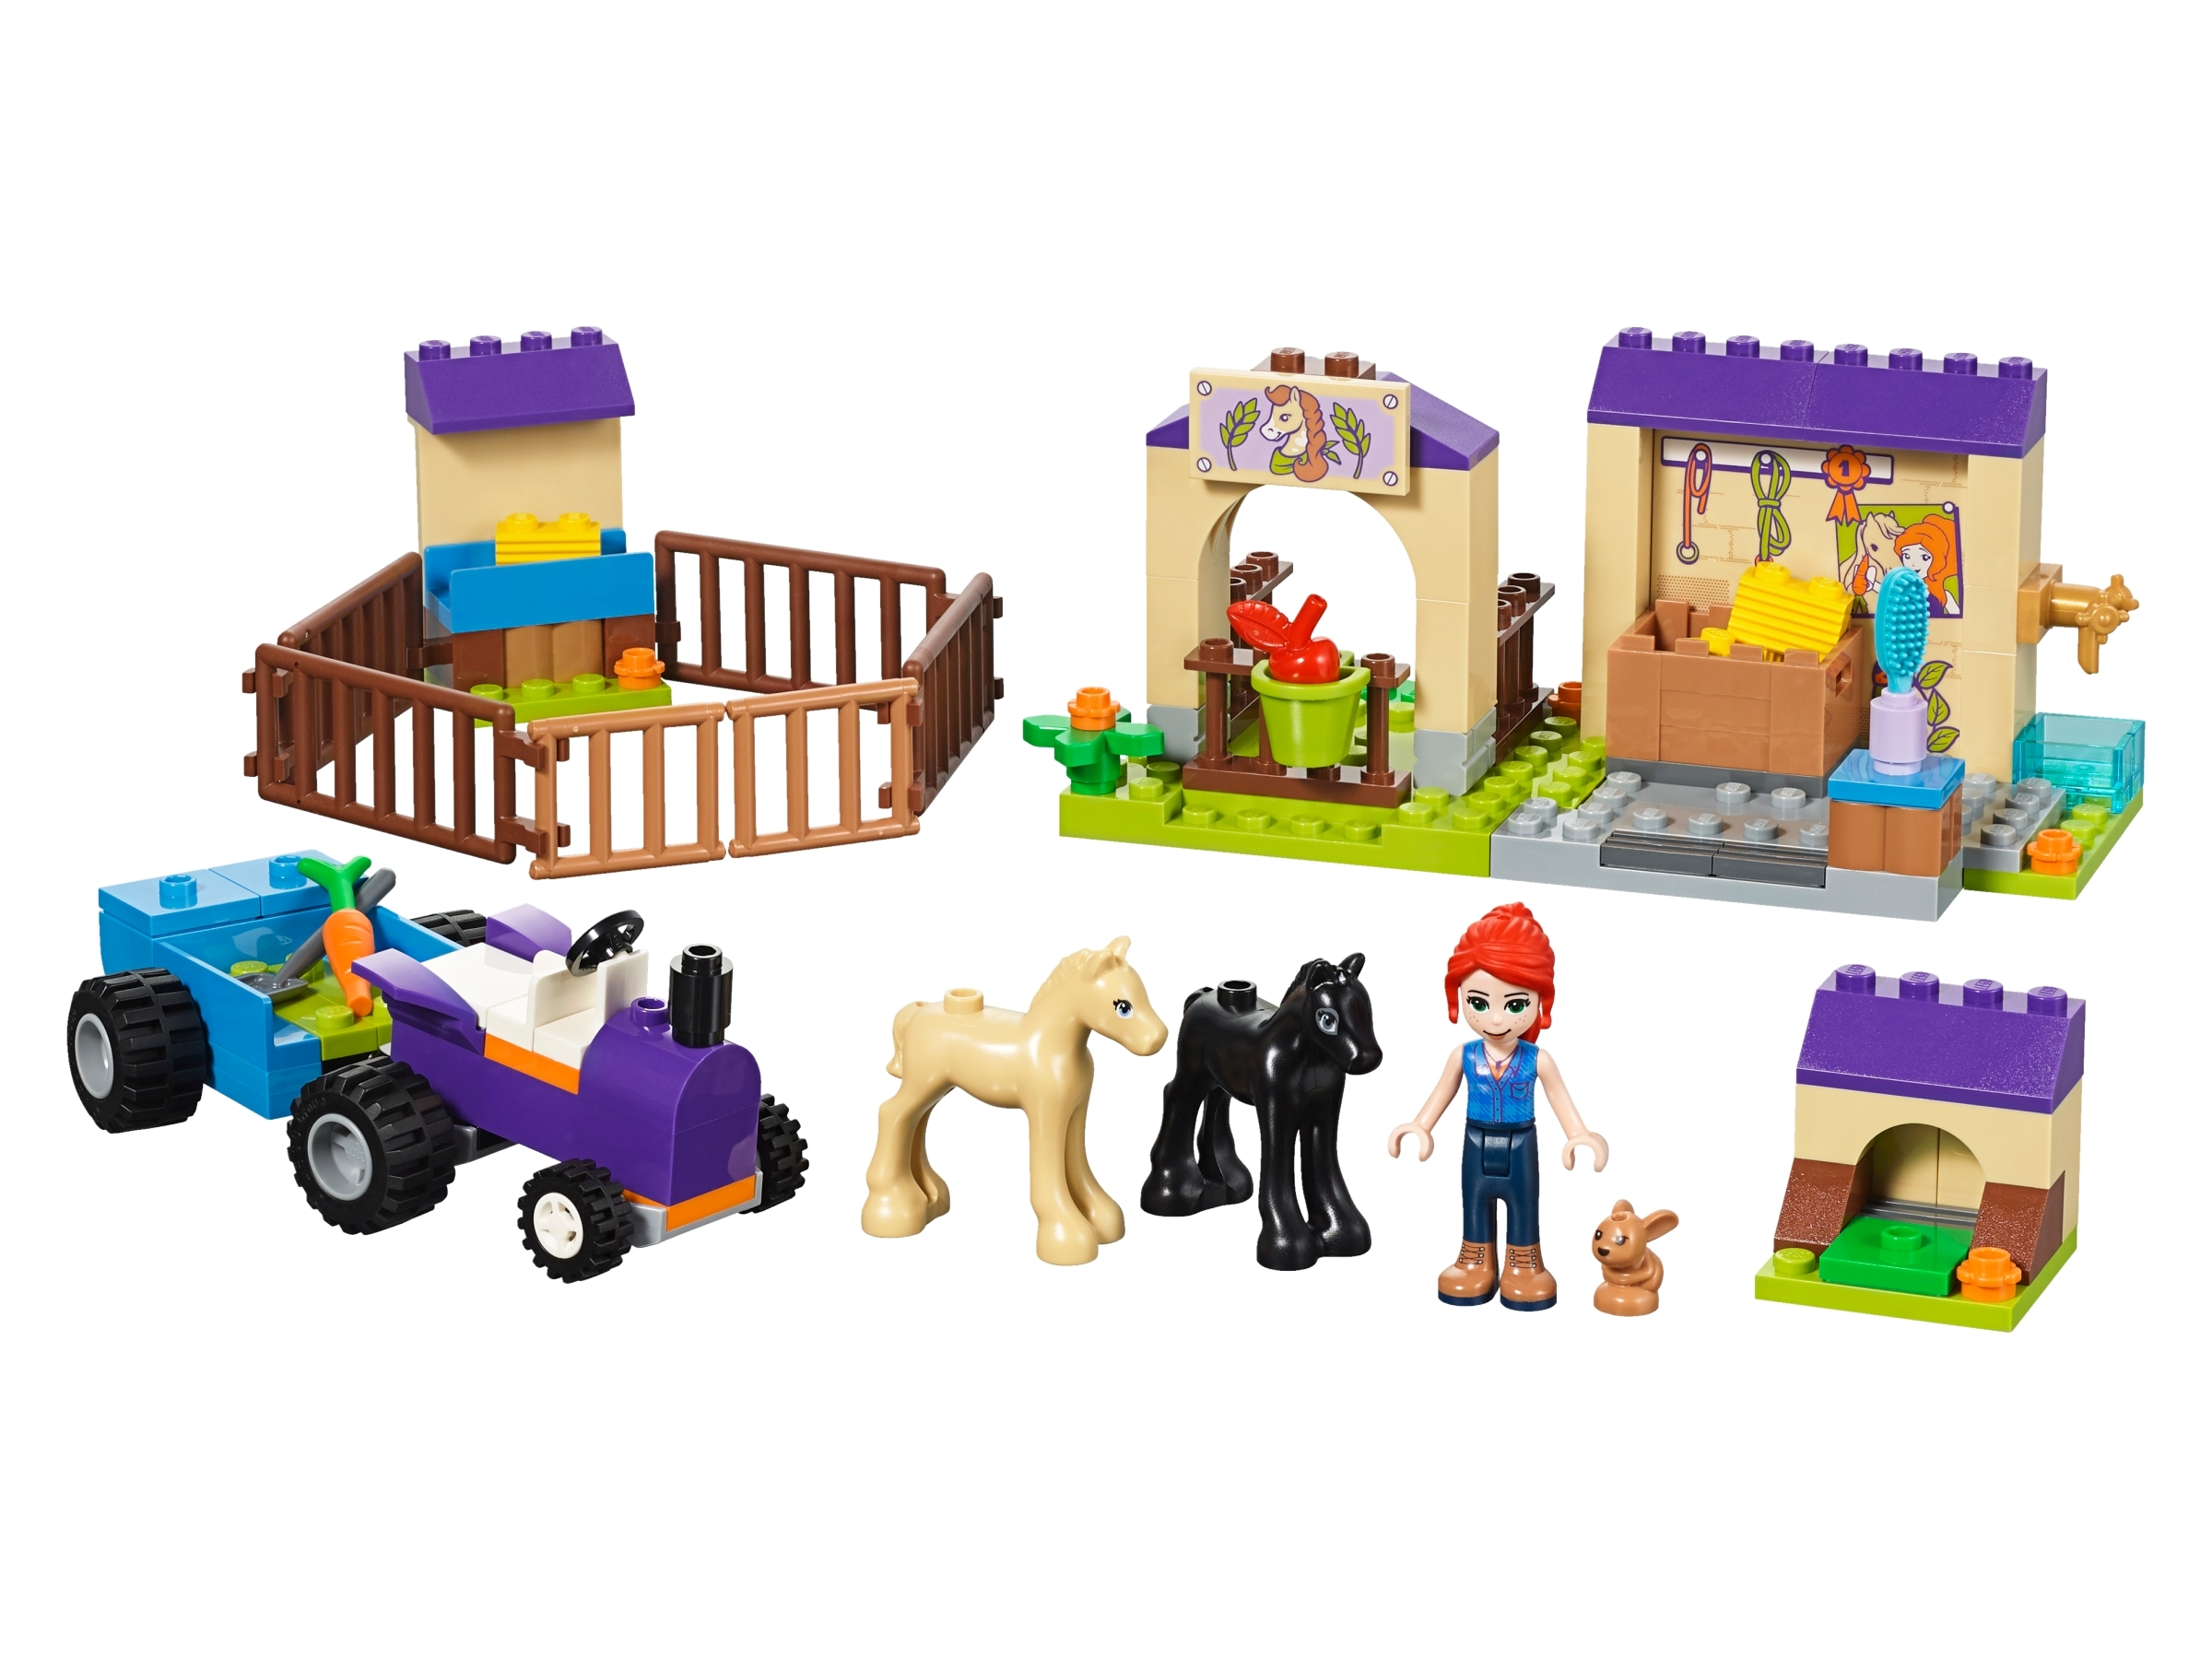 118 Pieces Mia/'s Foal Stable 41361 Building Kit LEGO Friends 4